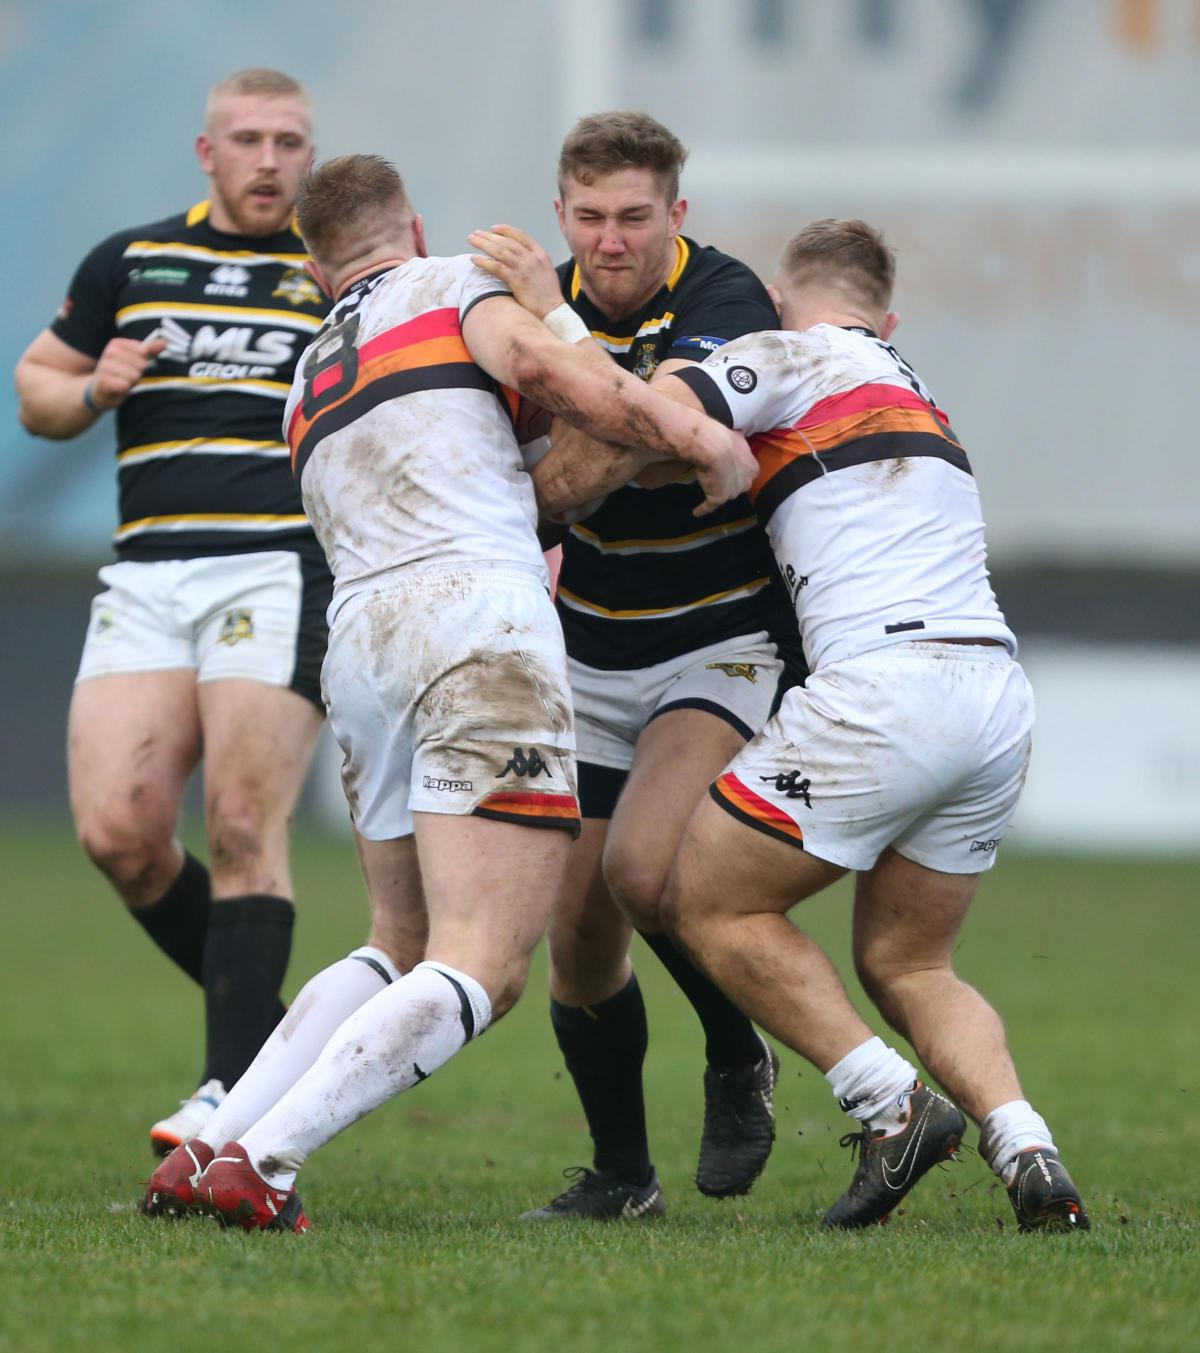 d5cd1c4e99 Rugby league Championship: All the ins and outs at every club | York ...